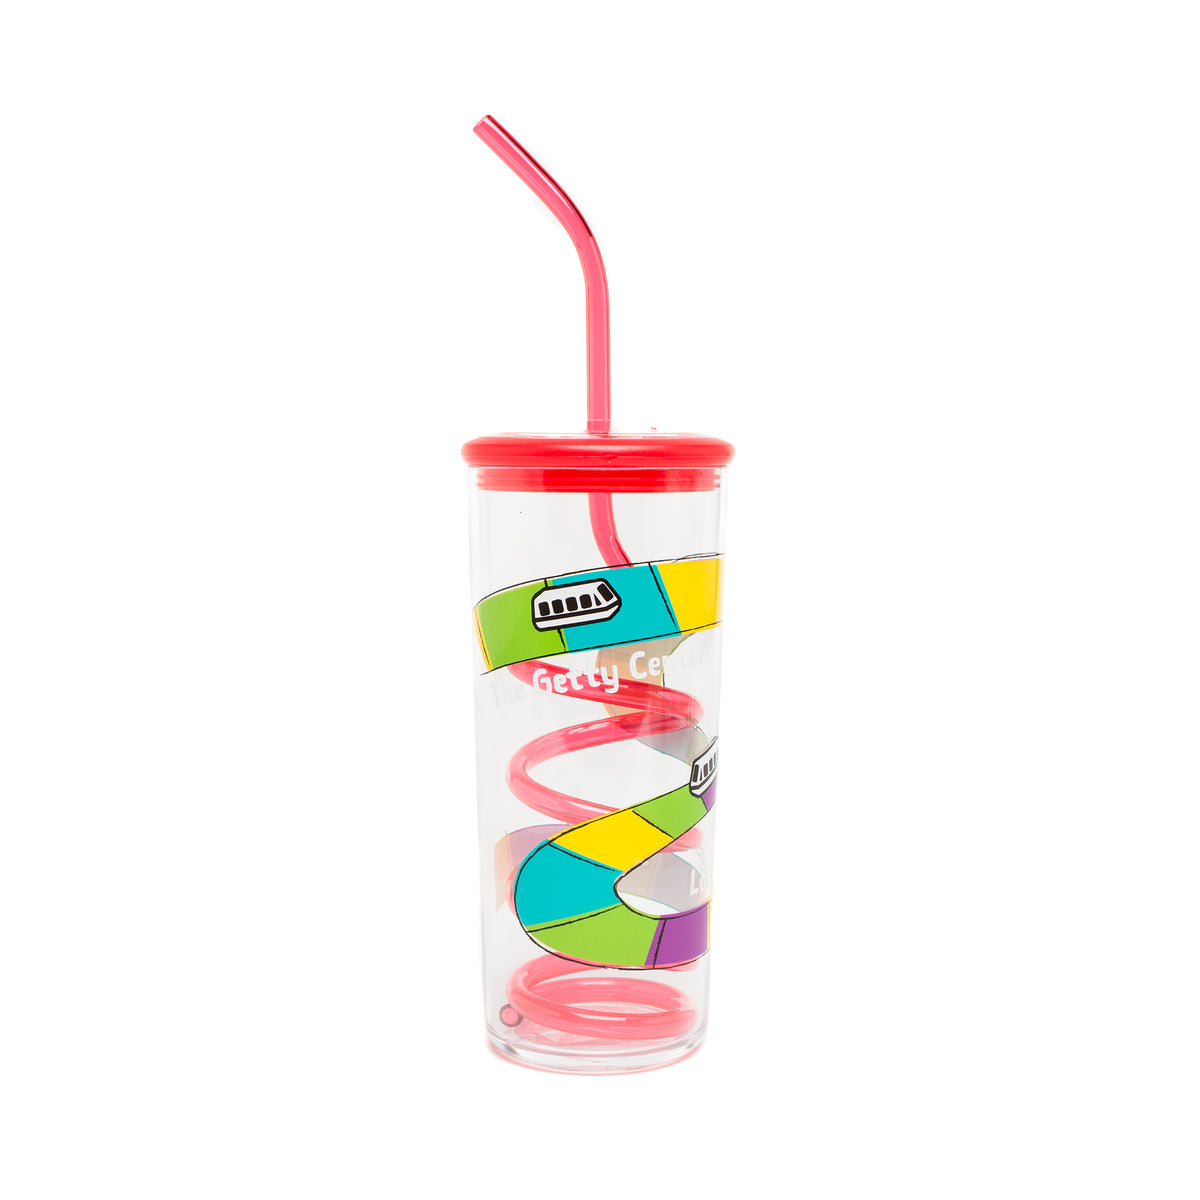 Getty Tram Silly Straw Cup-Red | Getty Store